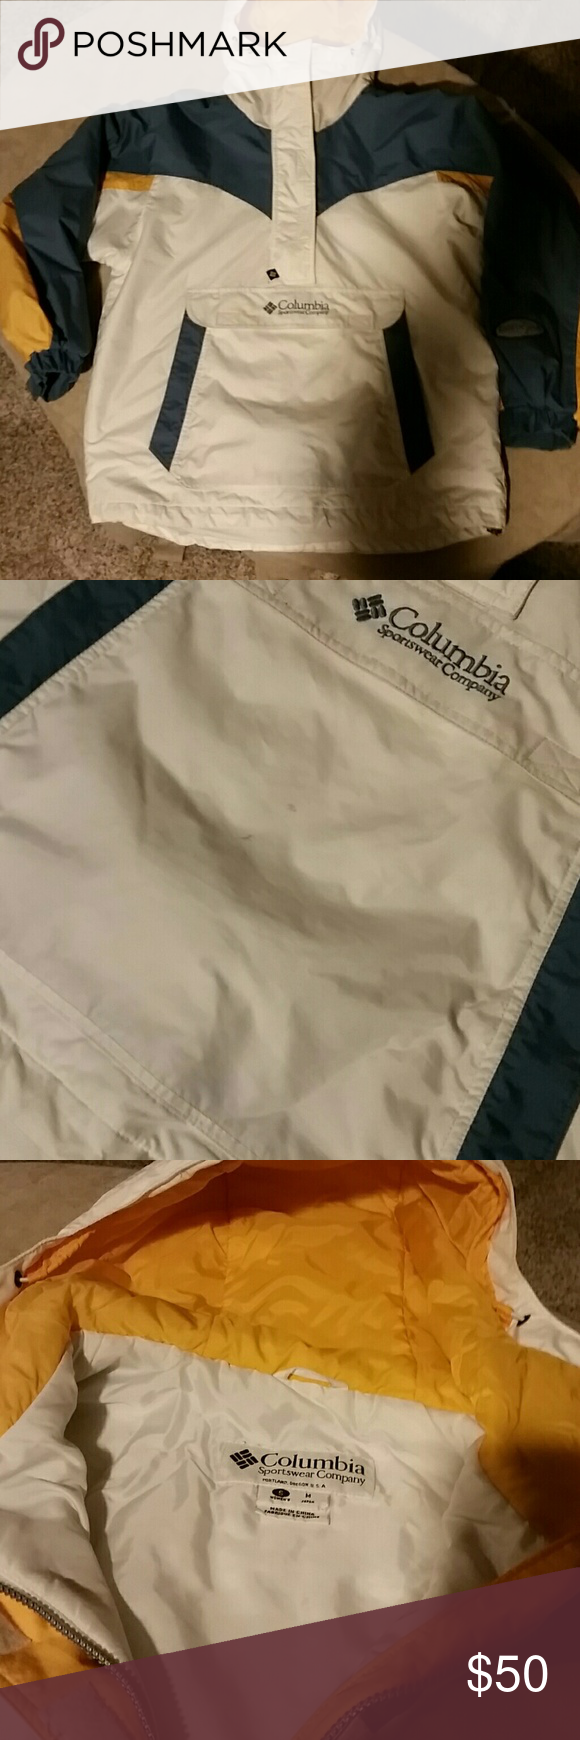 Women's Columbia Pullover Size small, fits like a Med or Large. Thick warm ski coat. Excellent condition, note some black spots on front pocket, I have not tryed to remove. Note a few small black spots on on white part of hood also. Otherwise condition is in great used condition. Columbia Jackets & Coats